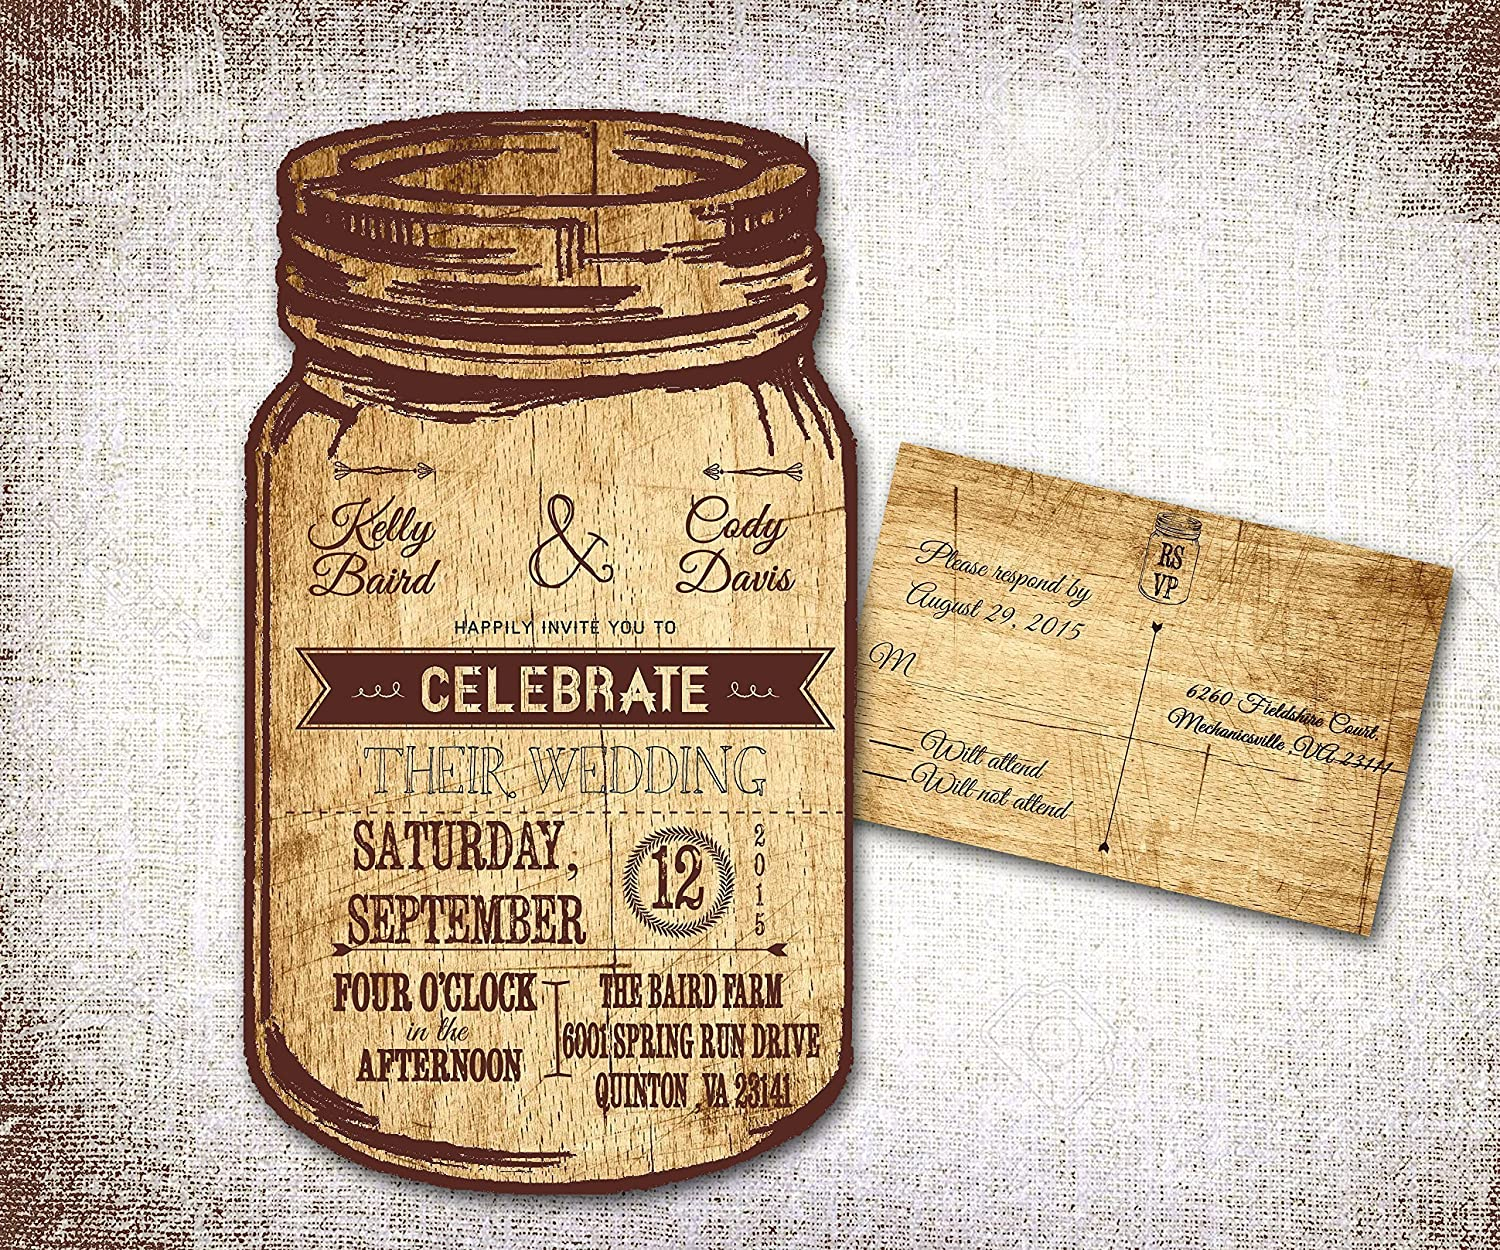 Personalized Wedding Invitations.Mason Jar Wedding Invitations Rustic Wedding Invitations Country Wedding Invitations Western Wedding Invitations Personalized Wedding Invitations